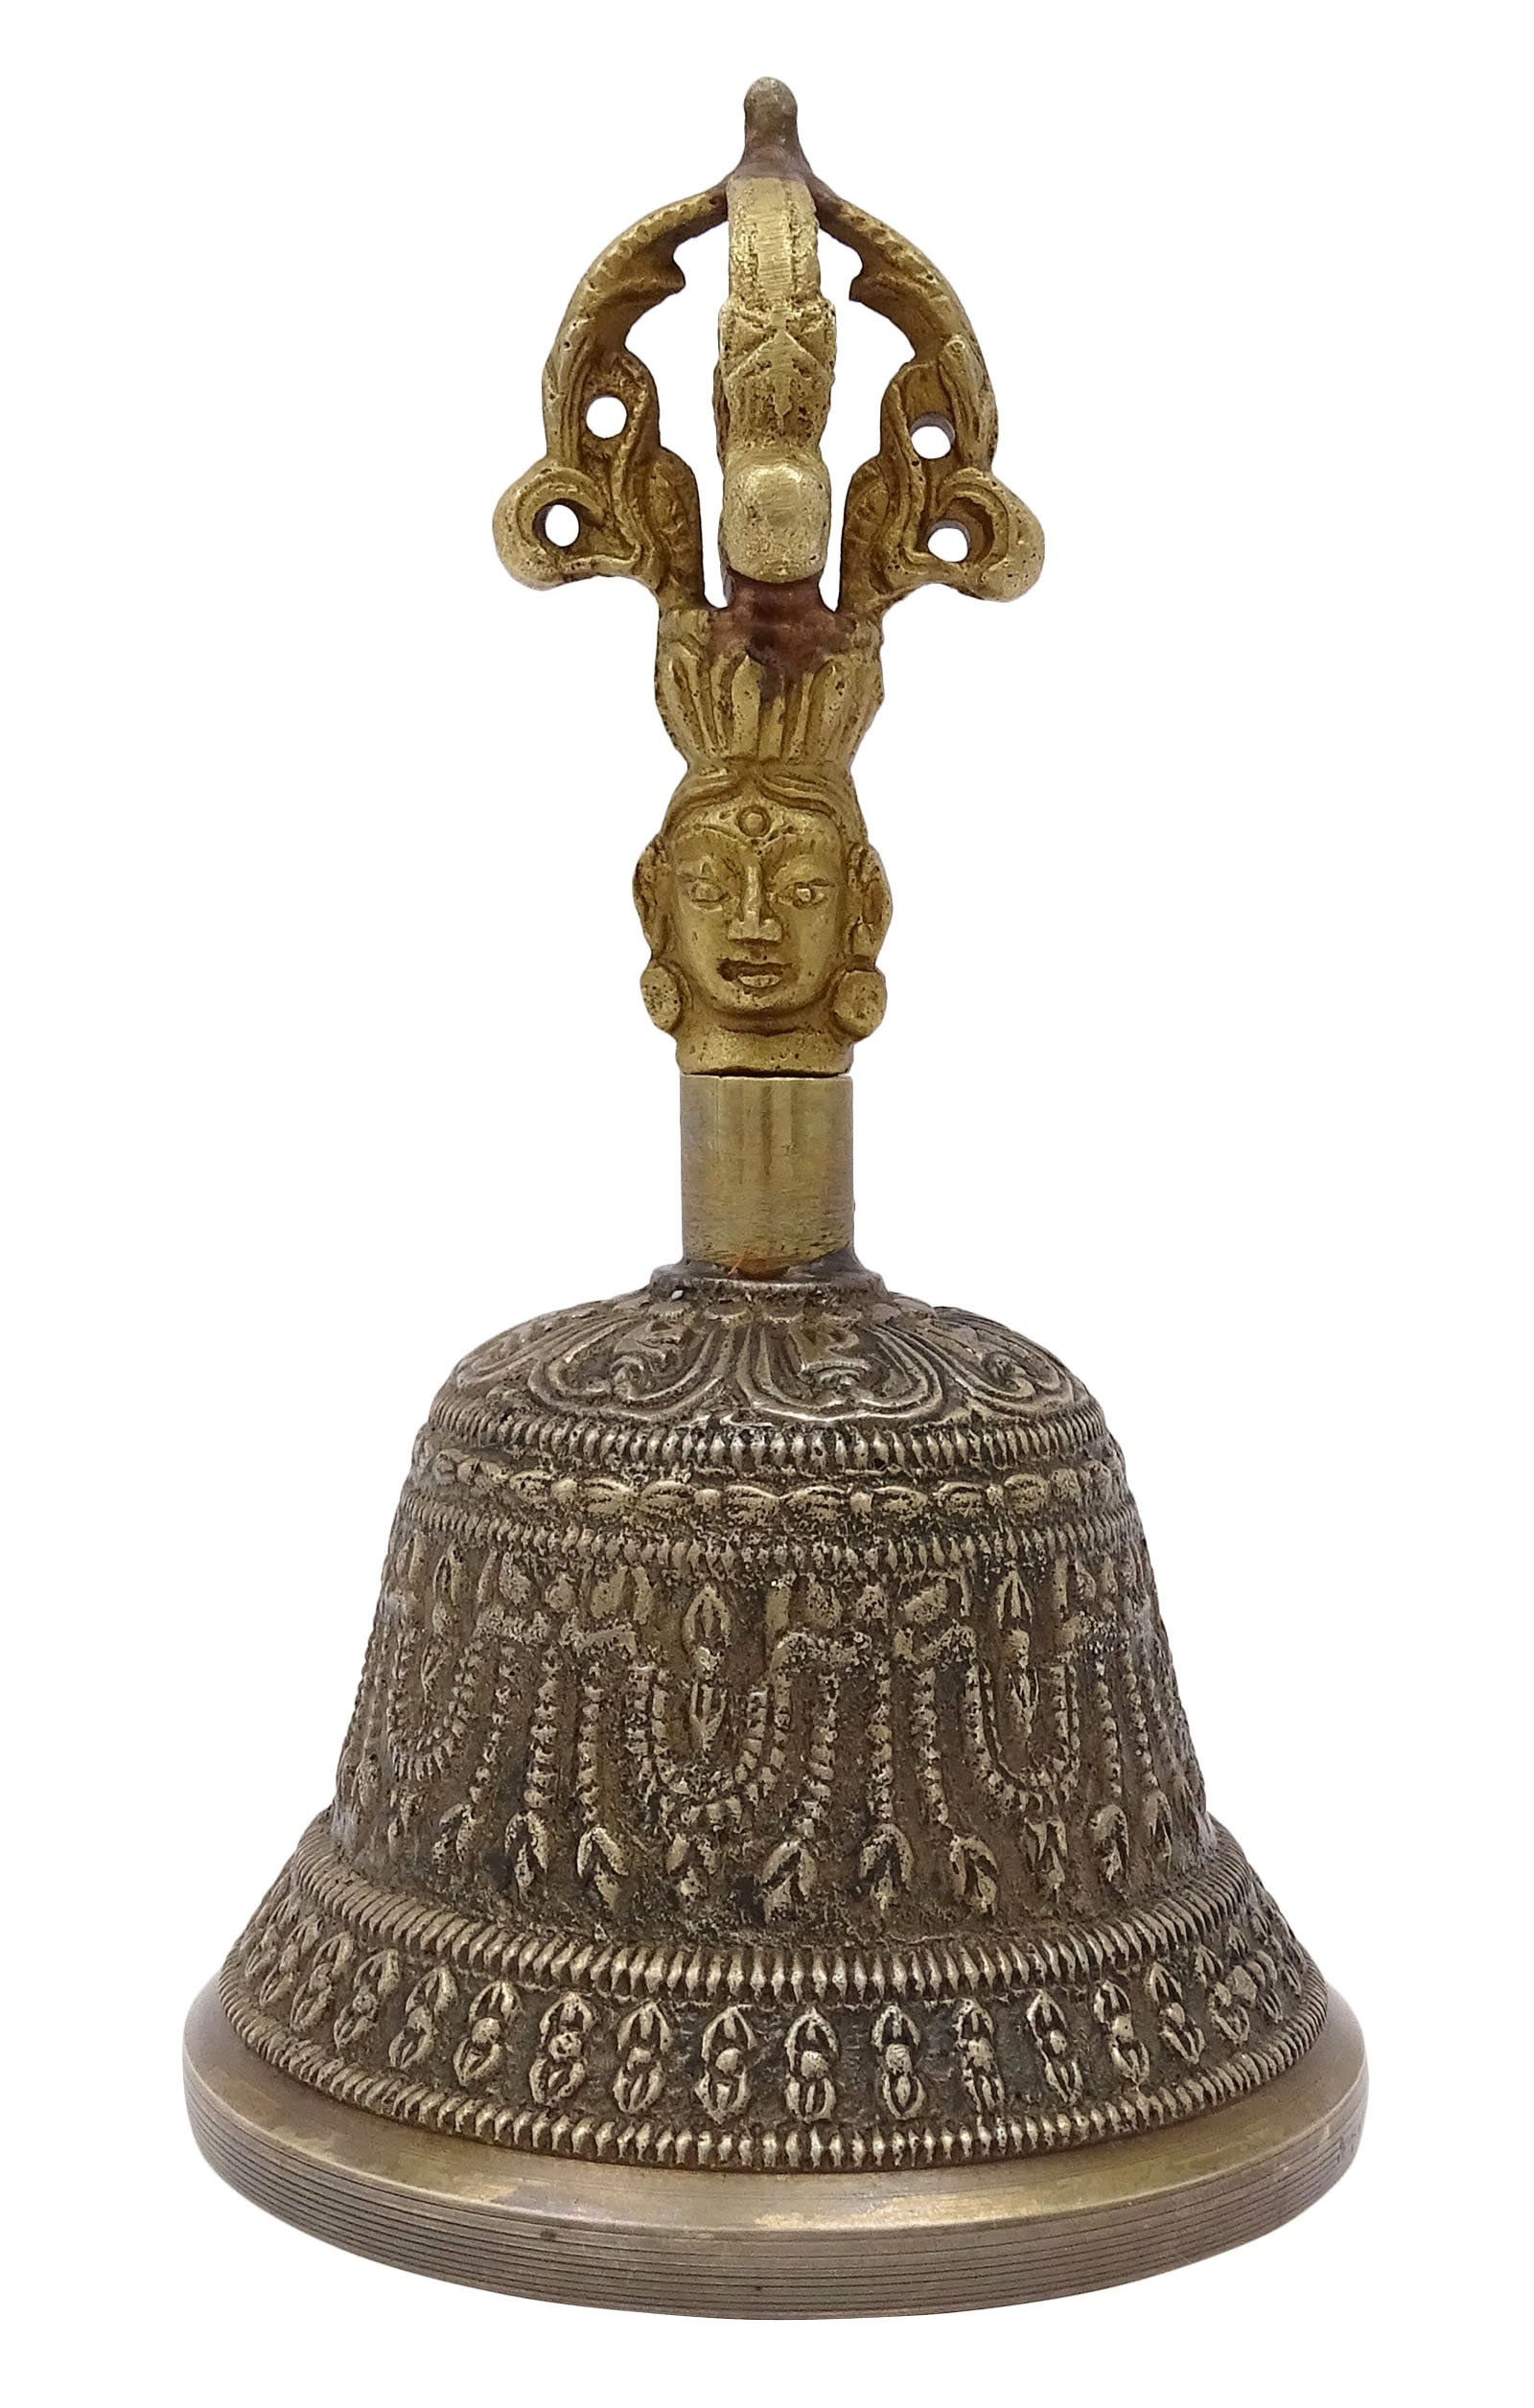 Antique Tibetan Religious Brass Quality Bell Handmade Vajra Dorje Prayer Bell